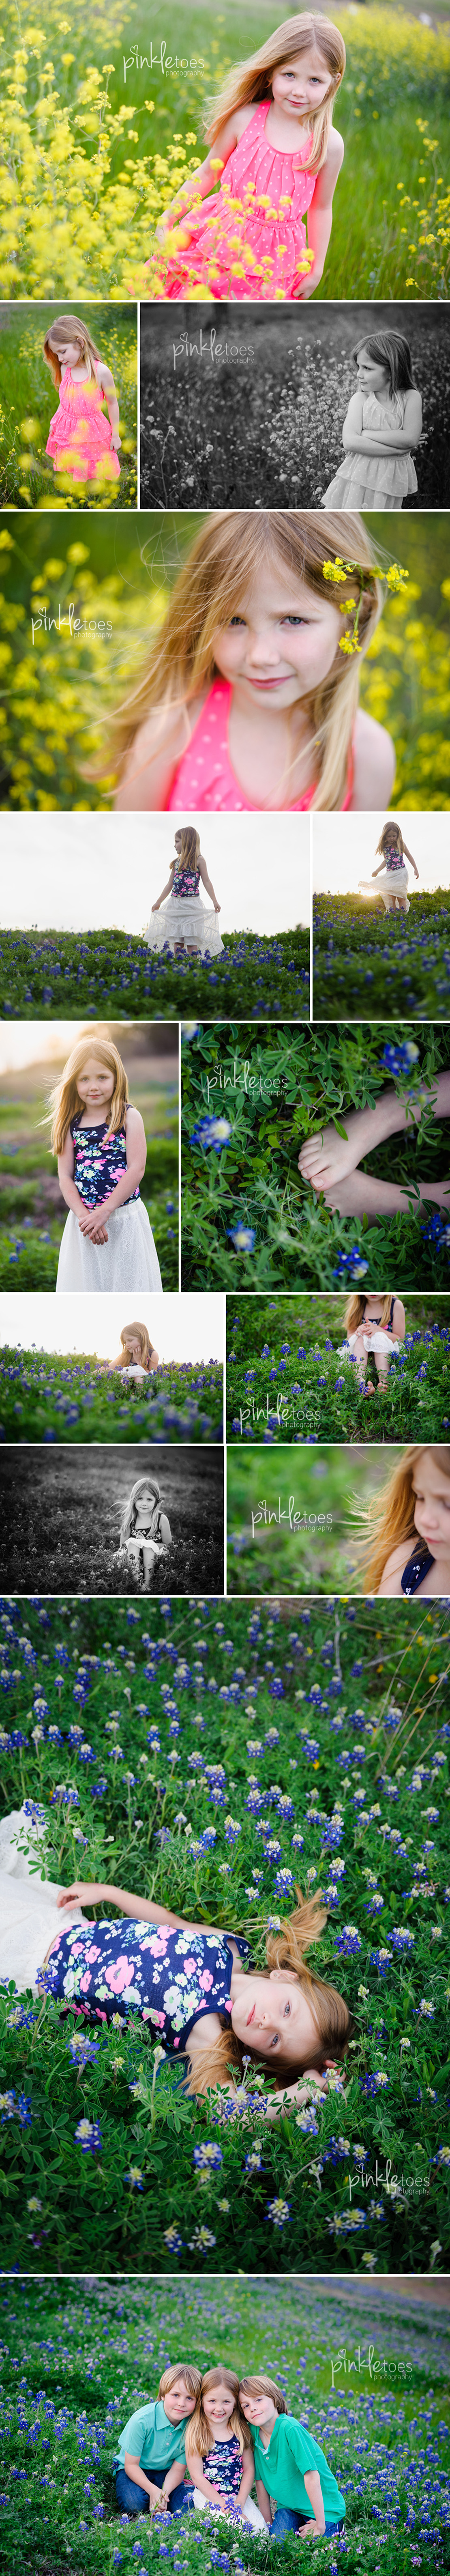 mine-austin-bluebonnets-texas-wildflower-pinkle-toes-photography